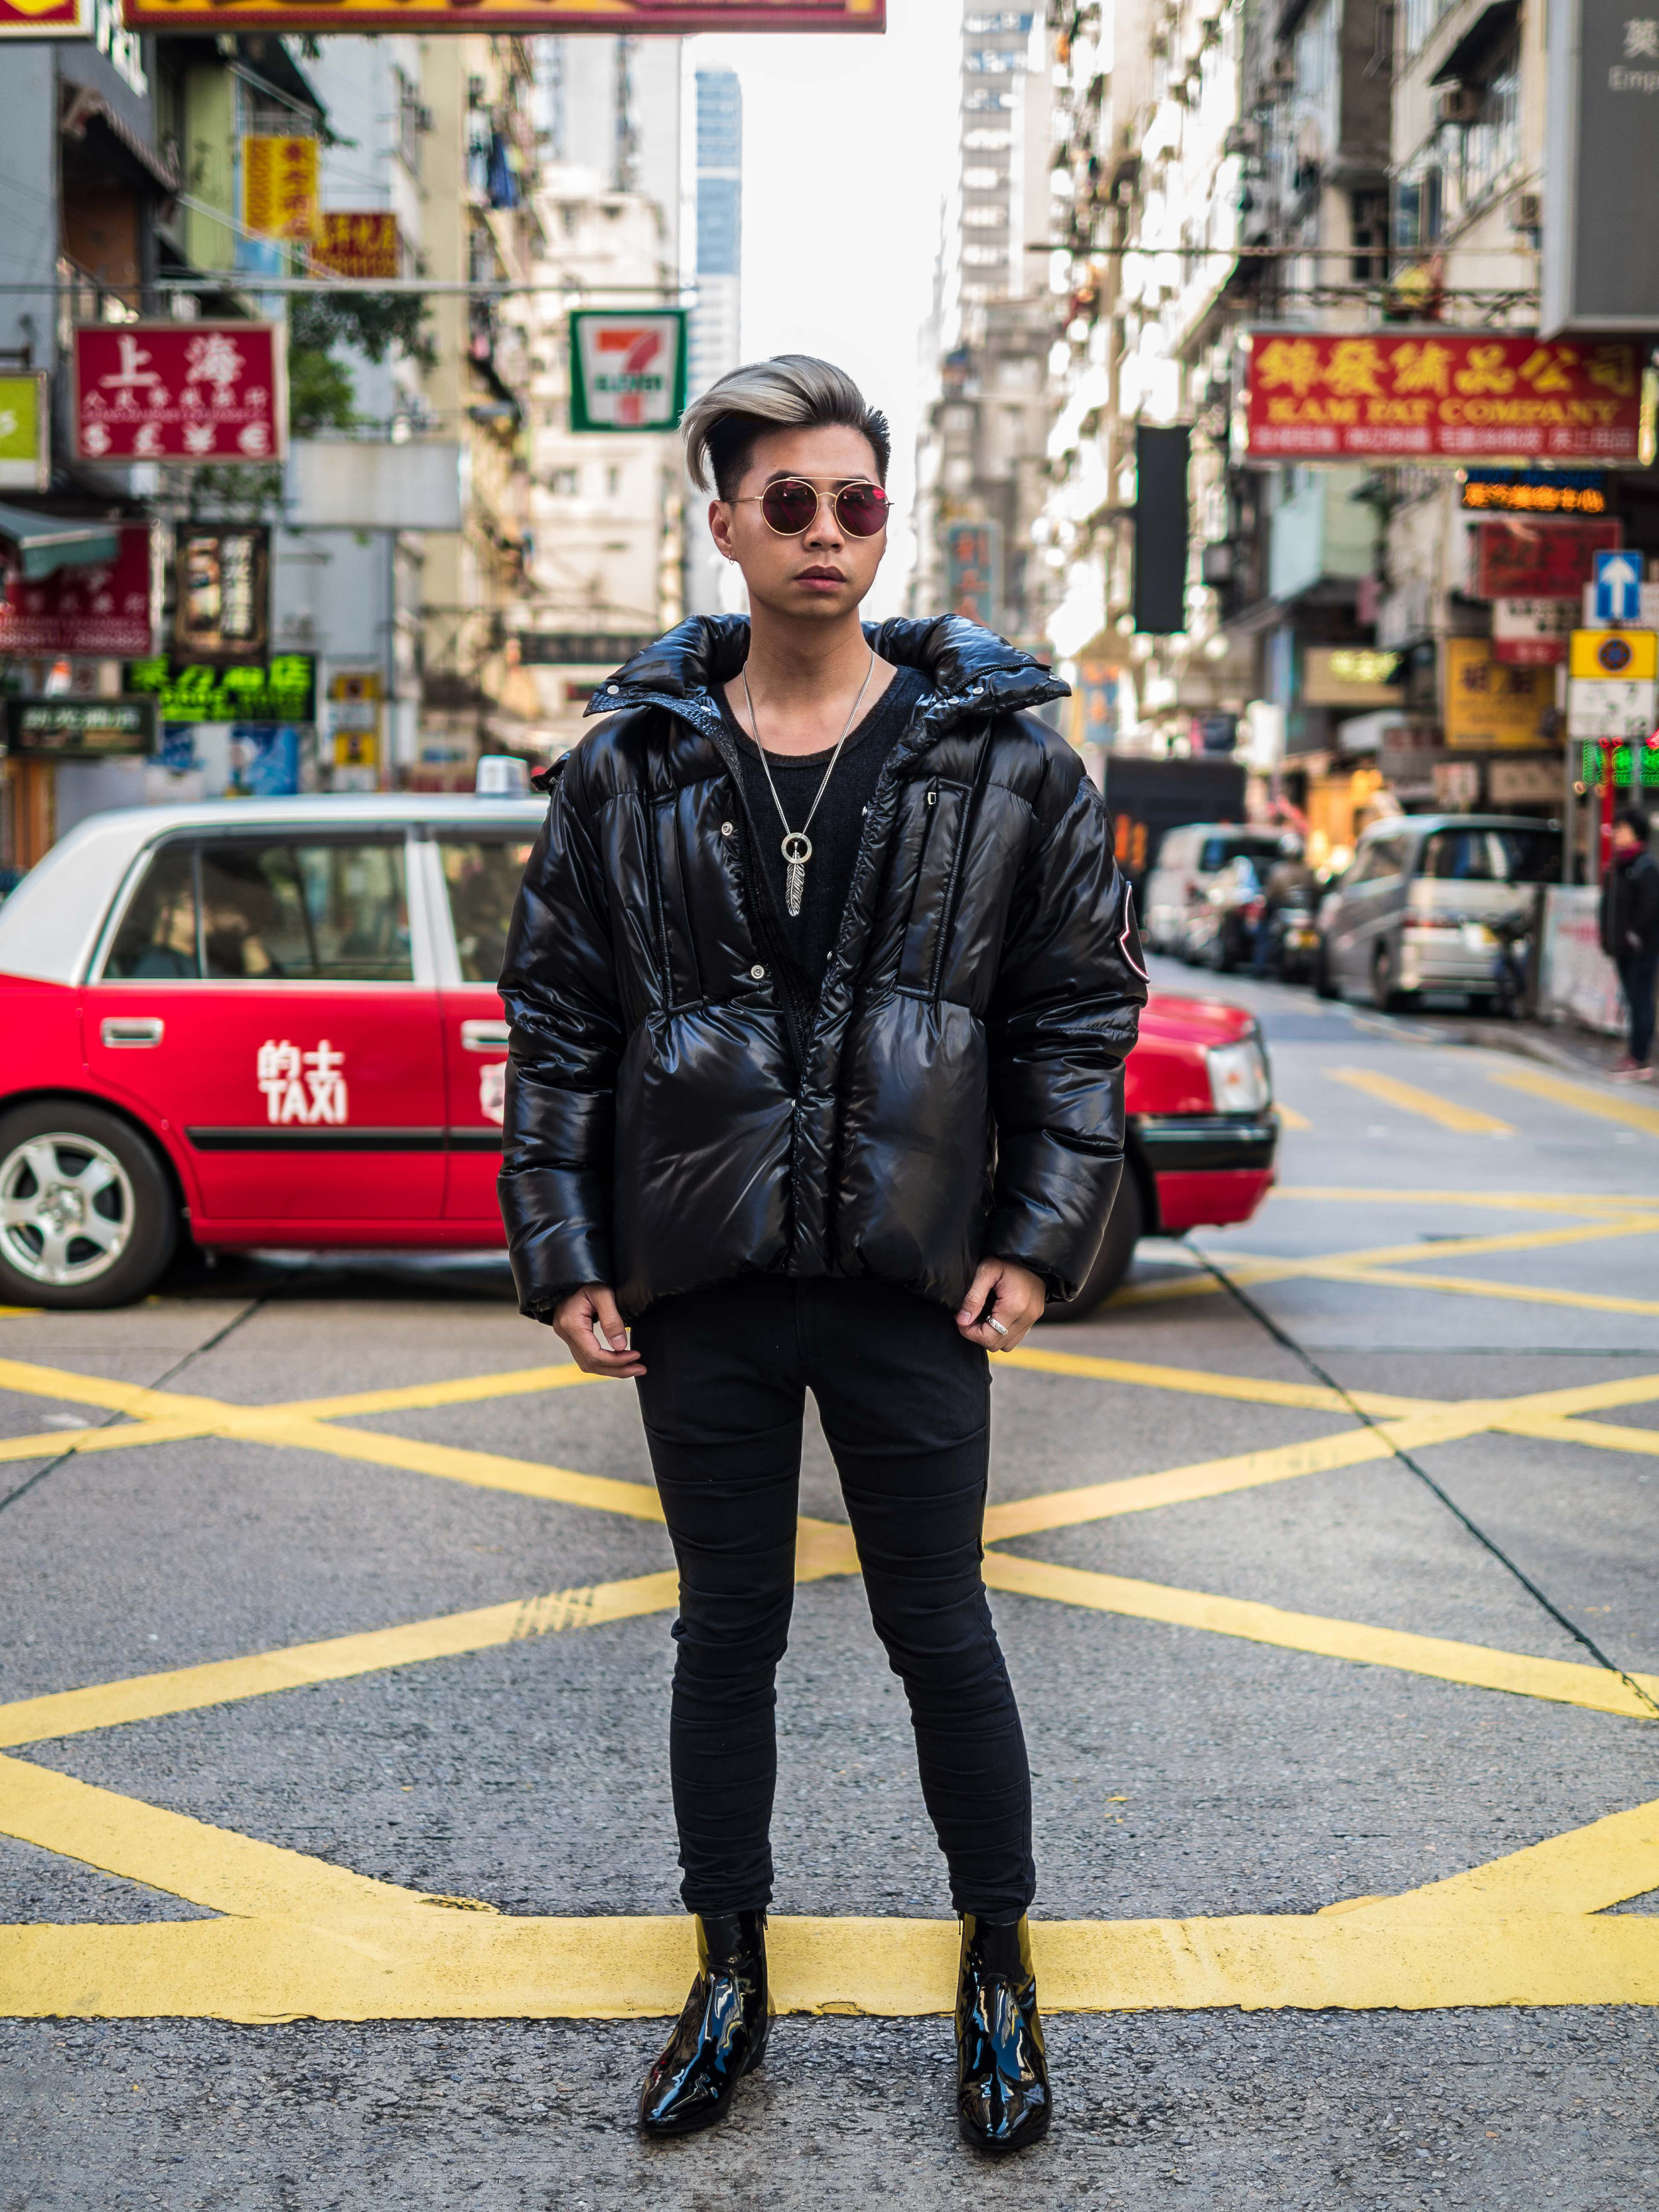 The only and only puffer jacket you'll be needing this winter season. - My Hong Kong moment with Moncler.